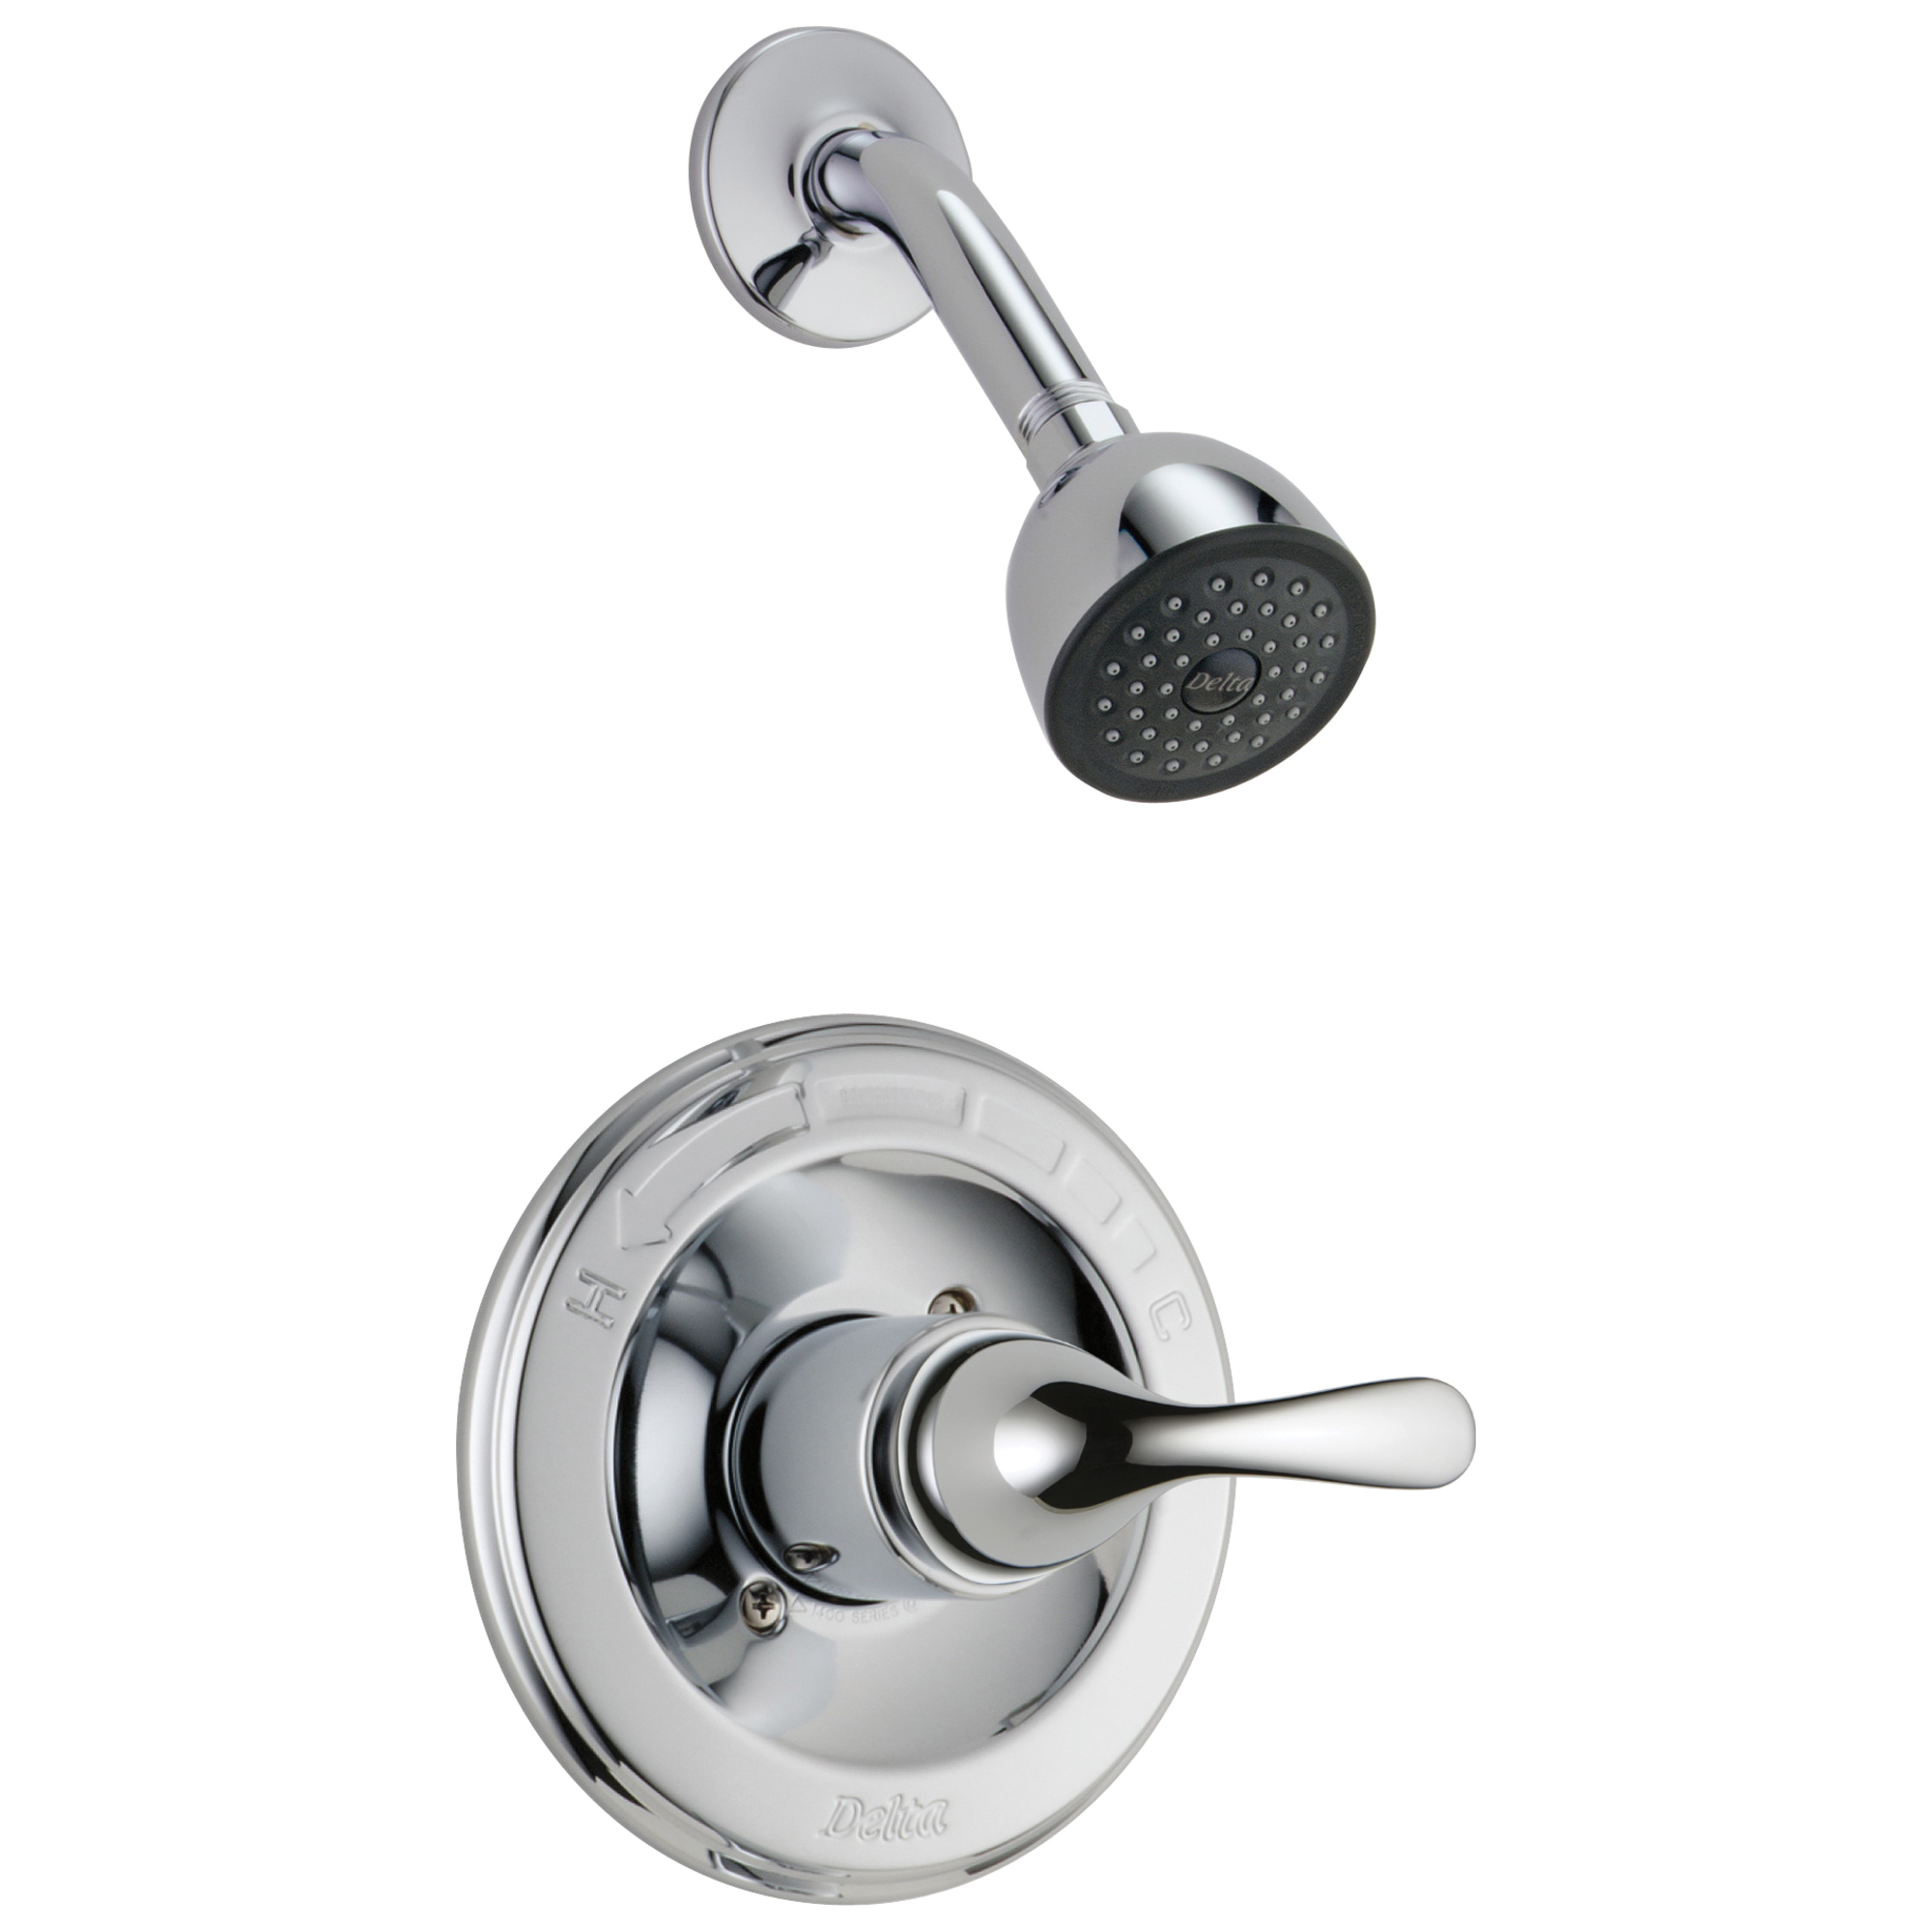 DELTA® T13220 Monitor® 13 Shower Trim, 1.75 gpm Shower, Hand Shower Yes/No: No, Chrome Plated